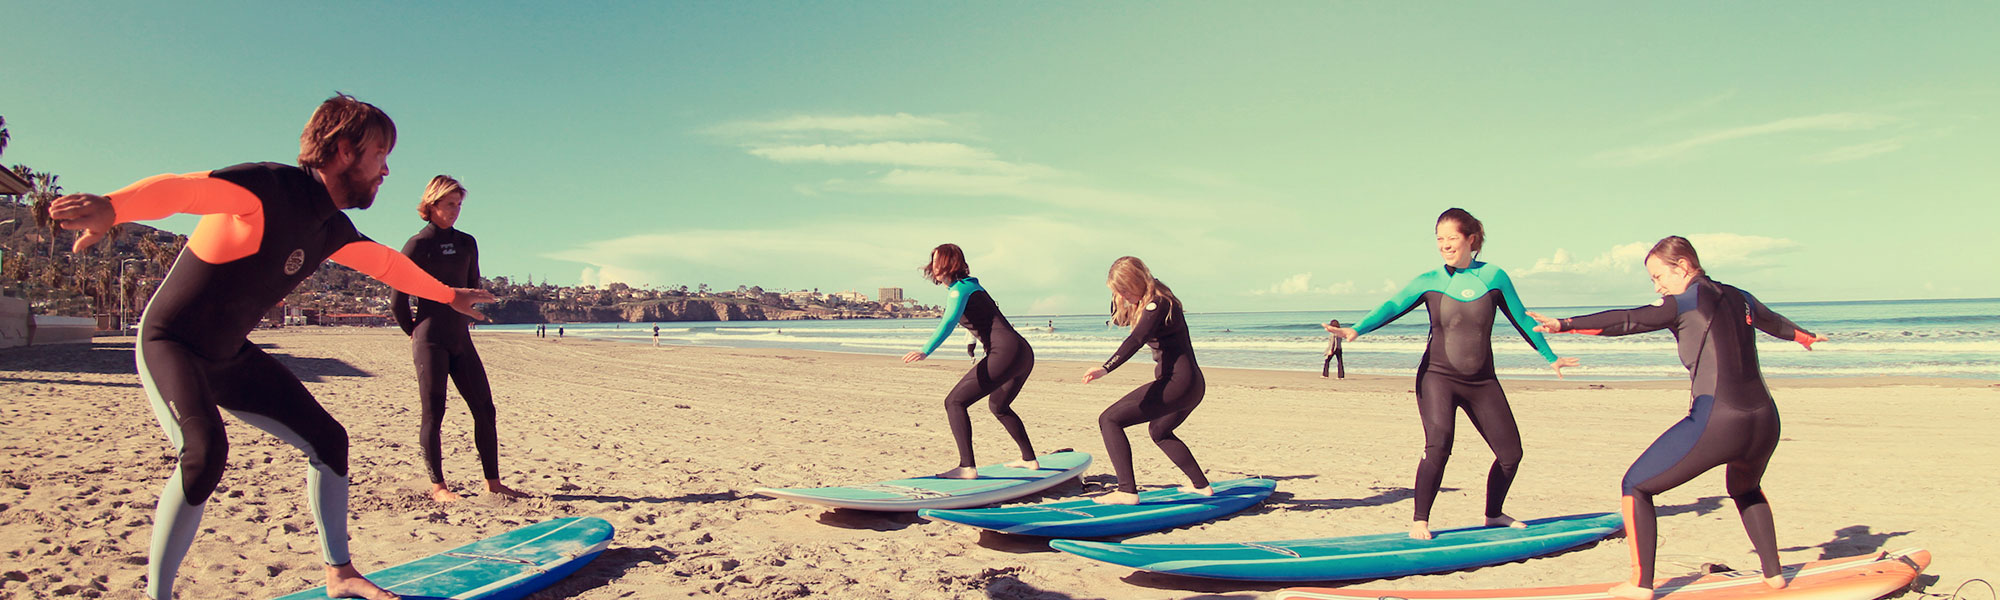 About Progressive Surf Academy